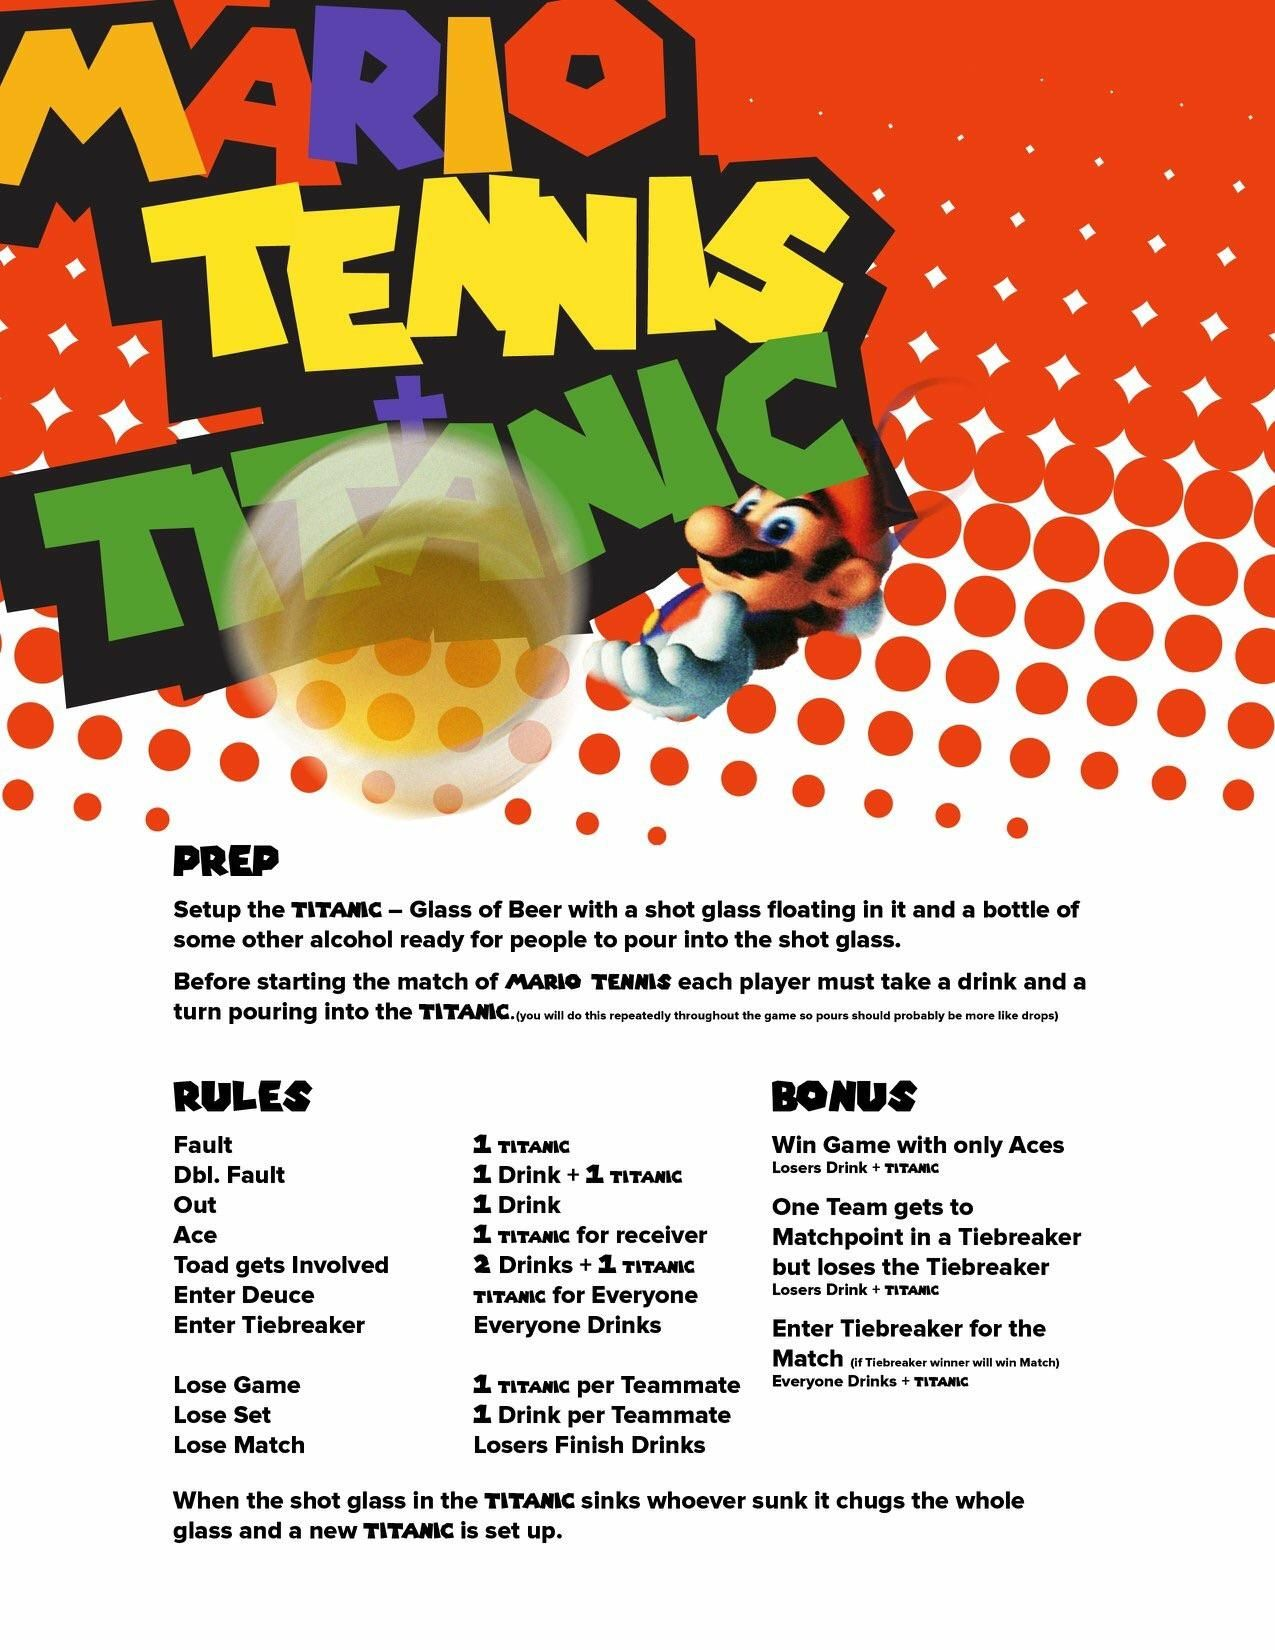 Mario Tennis drinking game for New Years Eve! Drinking